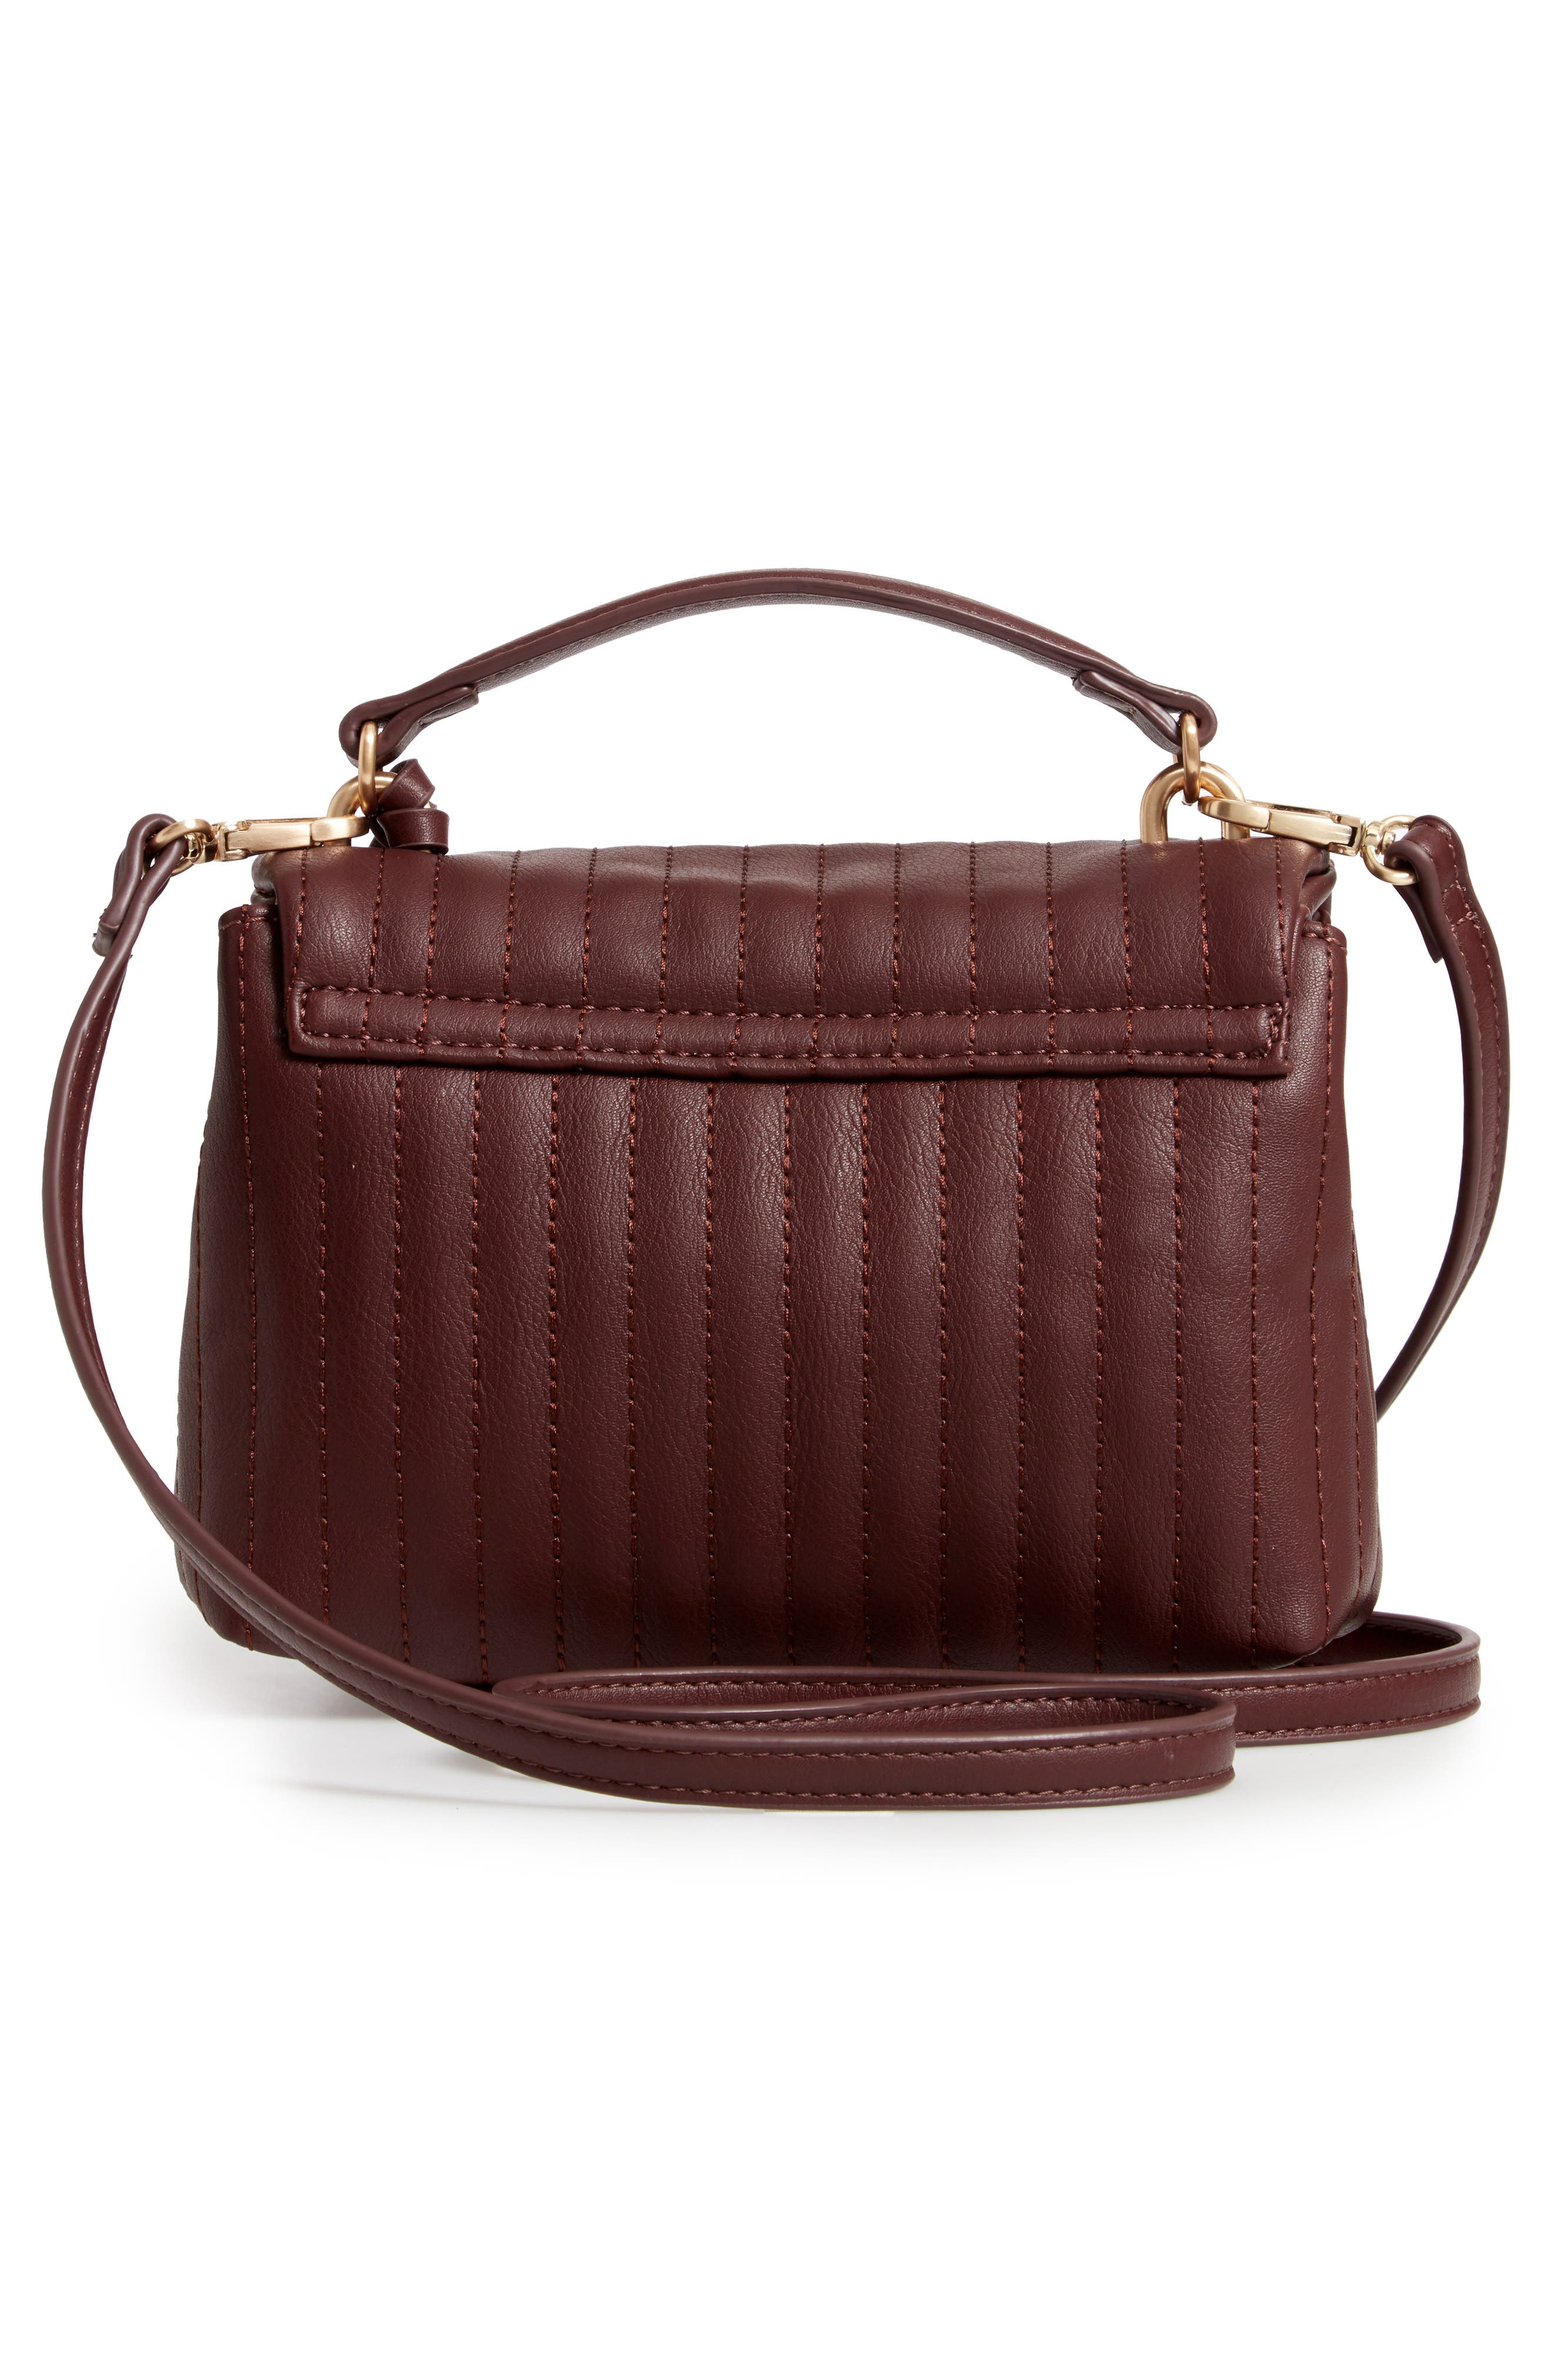 SOLE SOCIETY, Urche Faux Leather Crossbody Bag, Alternate thumbnail 4, color, OXBLOOD